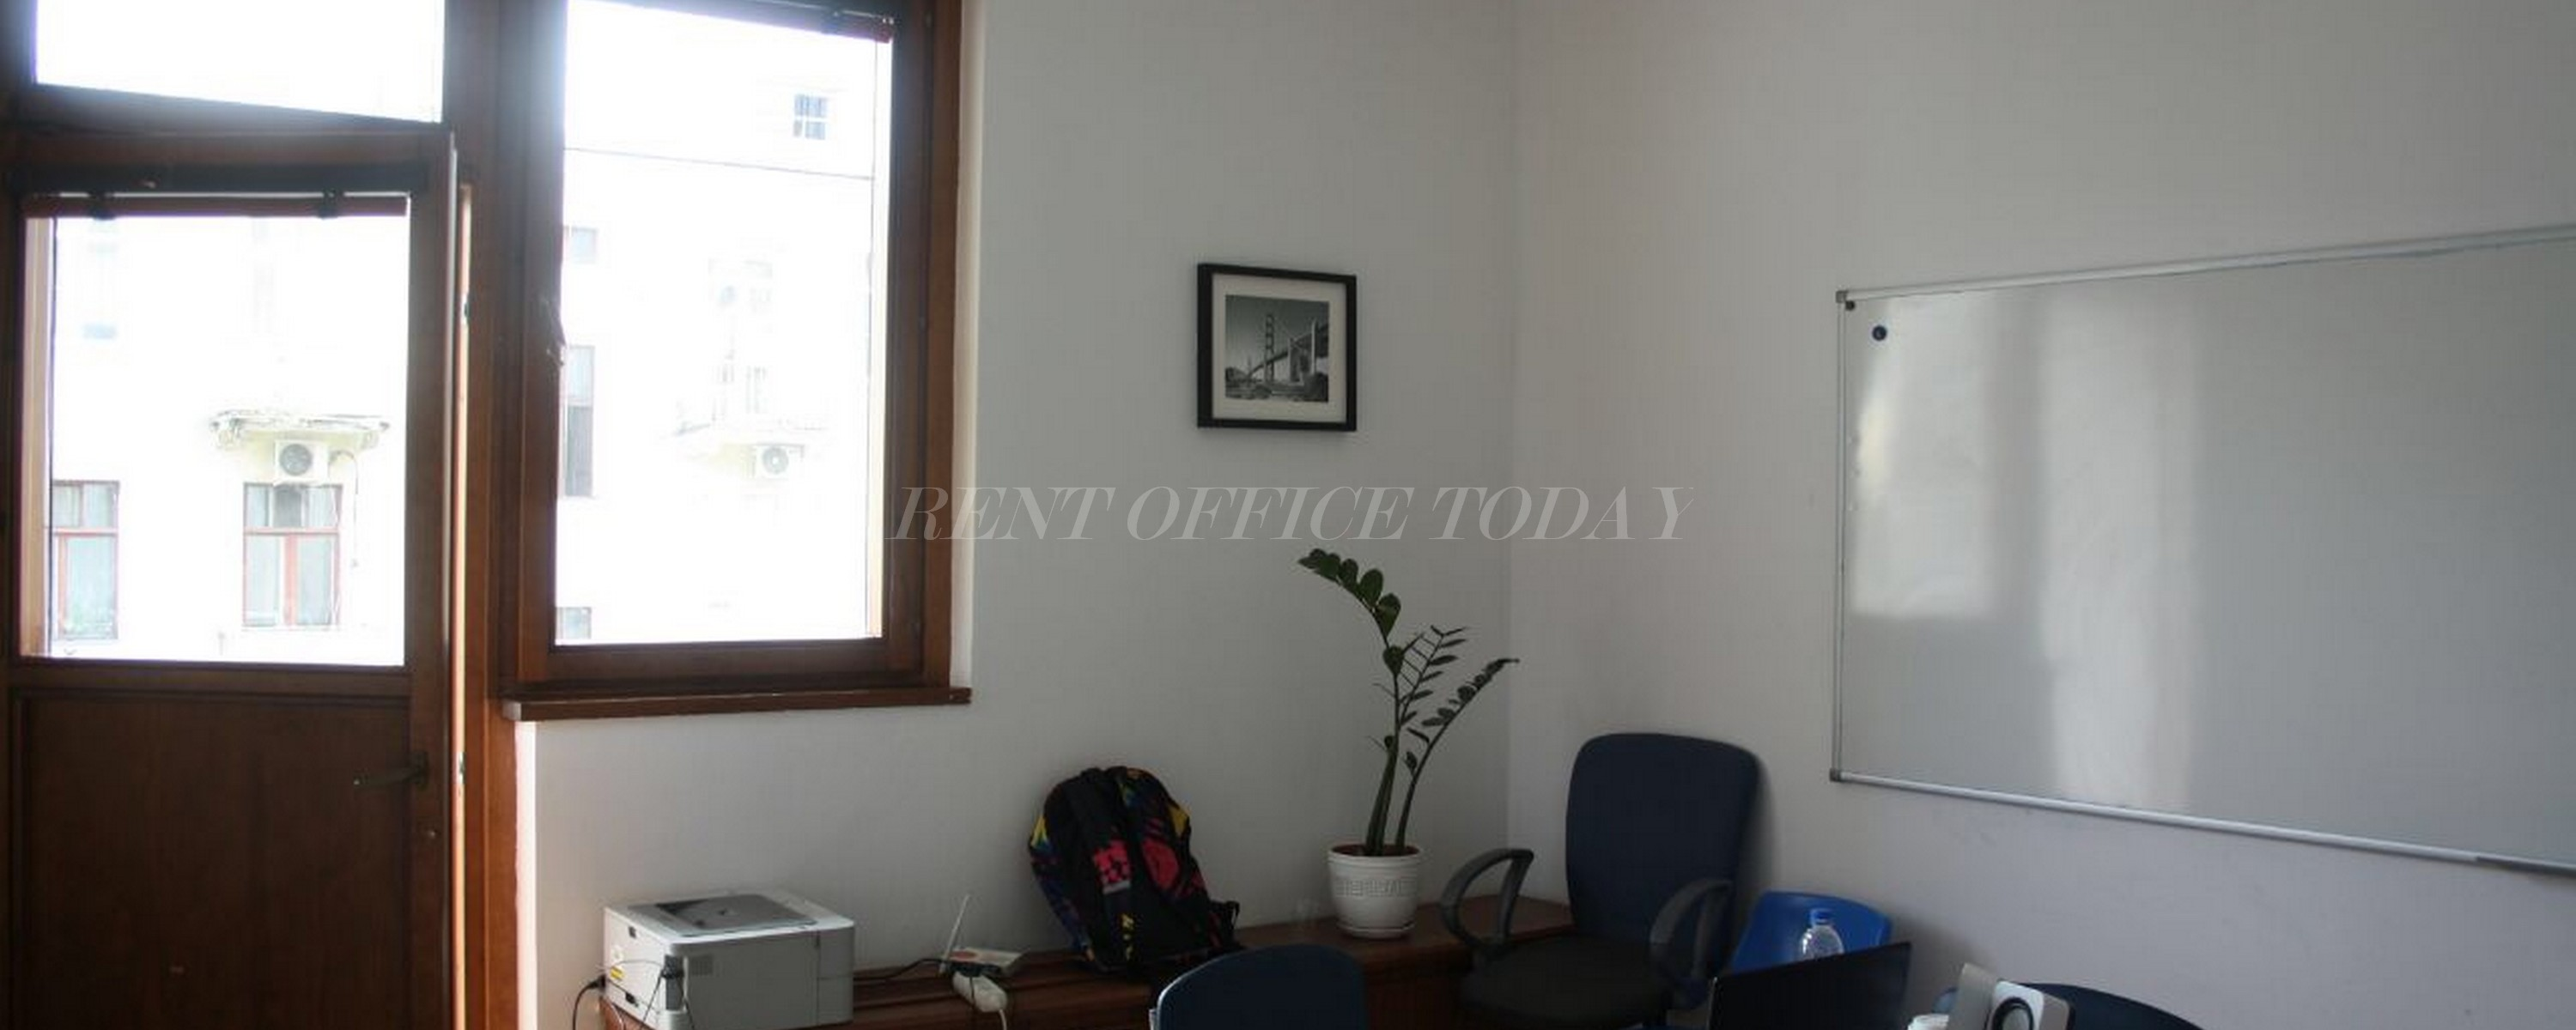 office rent 2 tverskaya-yamskaya 16-18-1